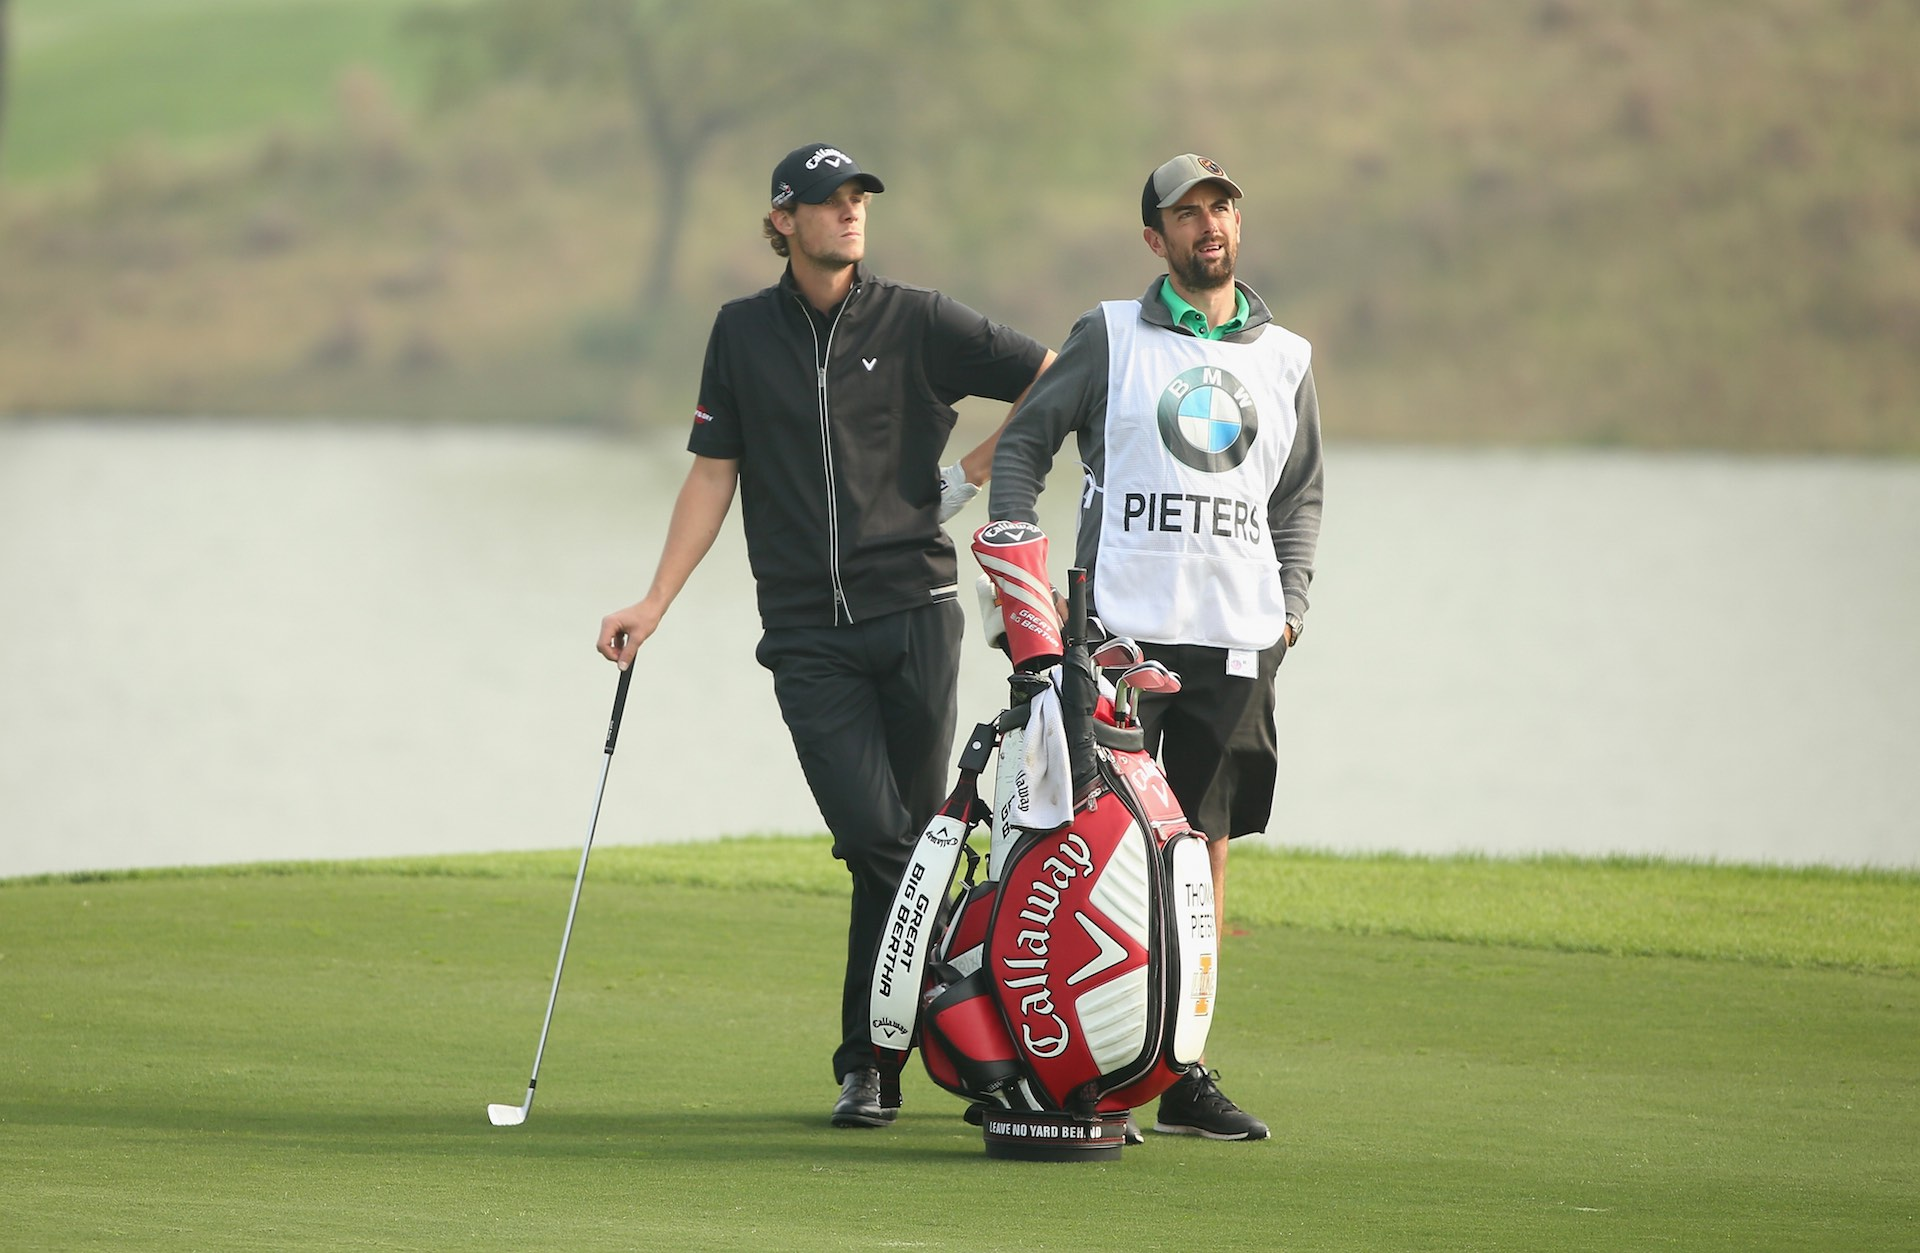 Jaidee Takes Top Spot At BMW Masters